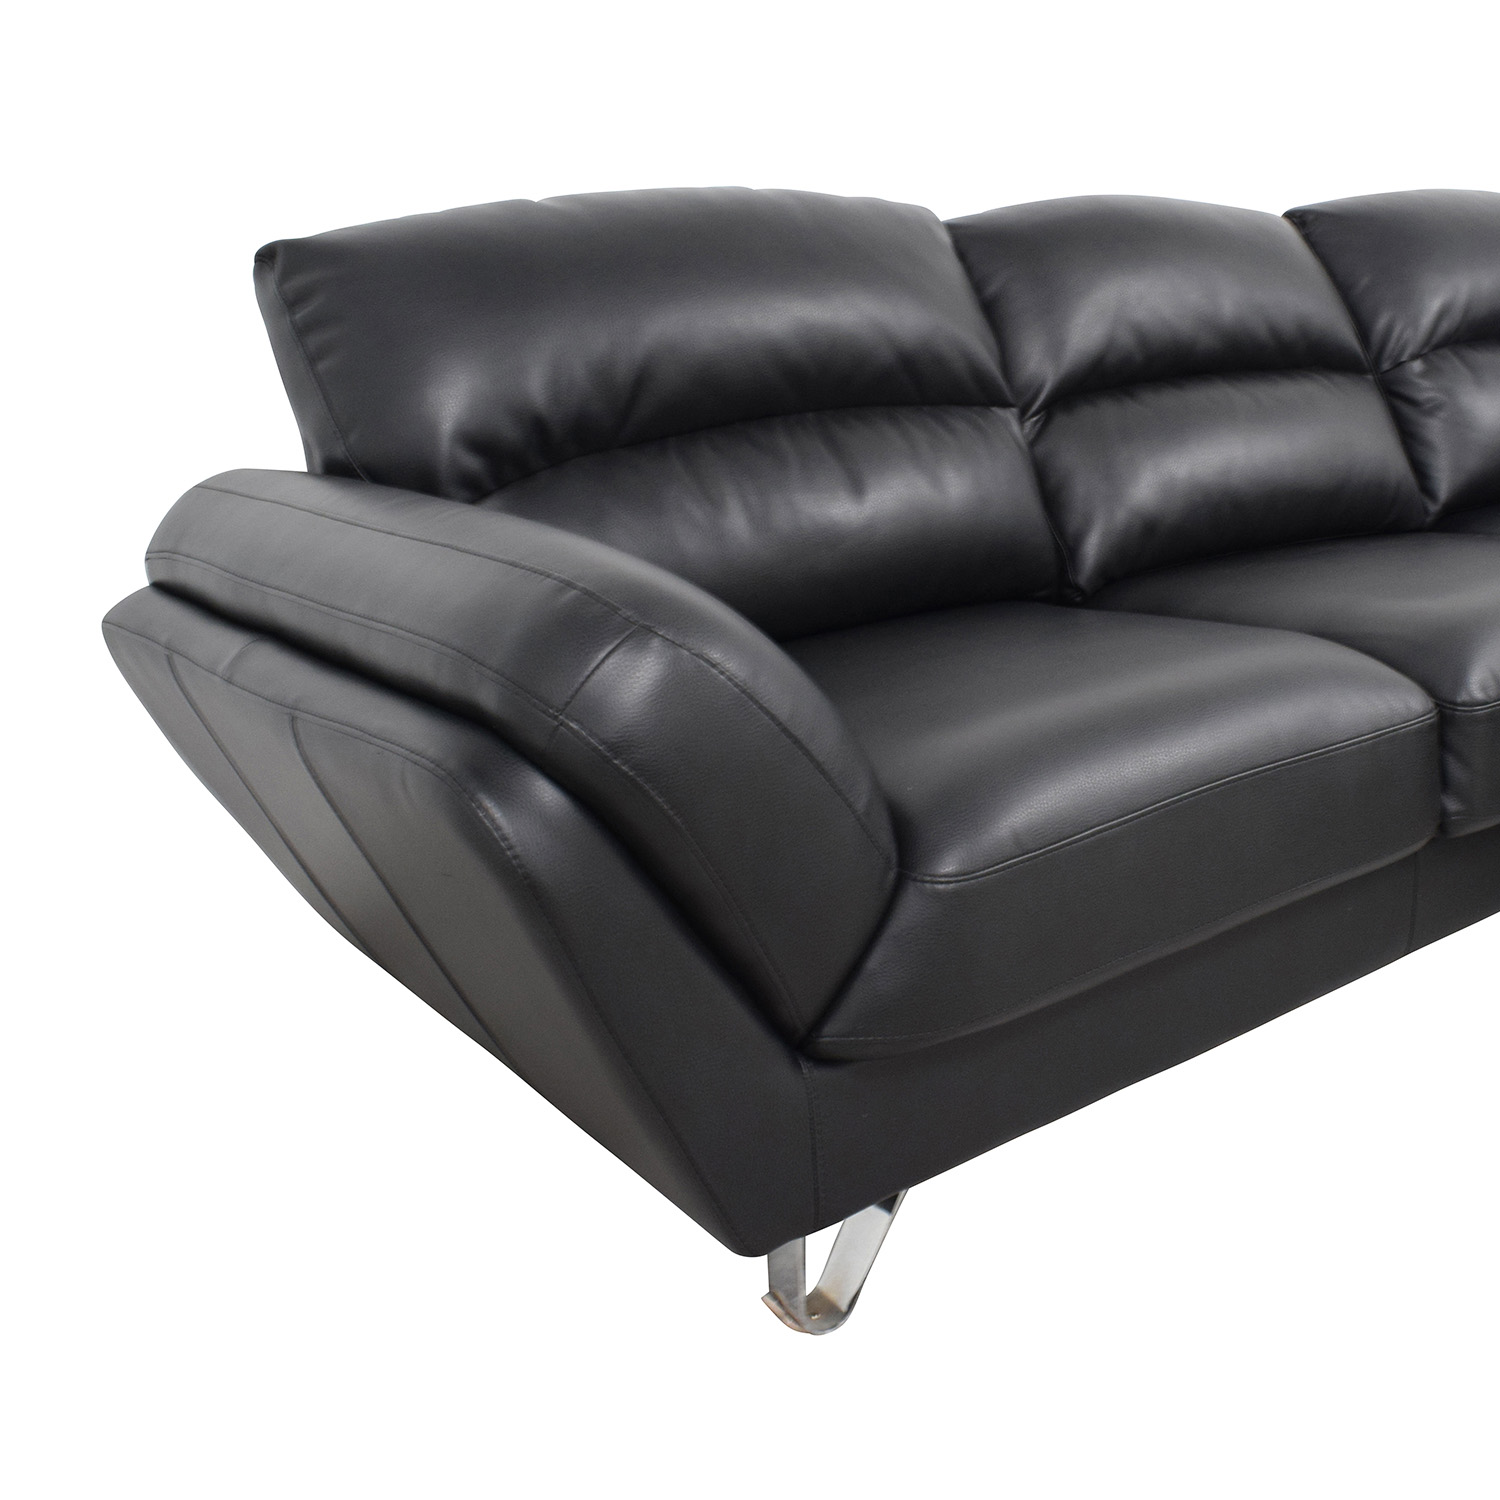 Leather Sectional Sofa Gta: Contemporary Faux Leather Two-piece Sectional